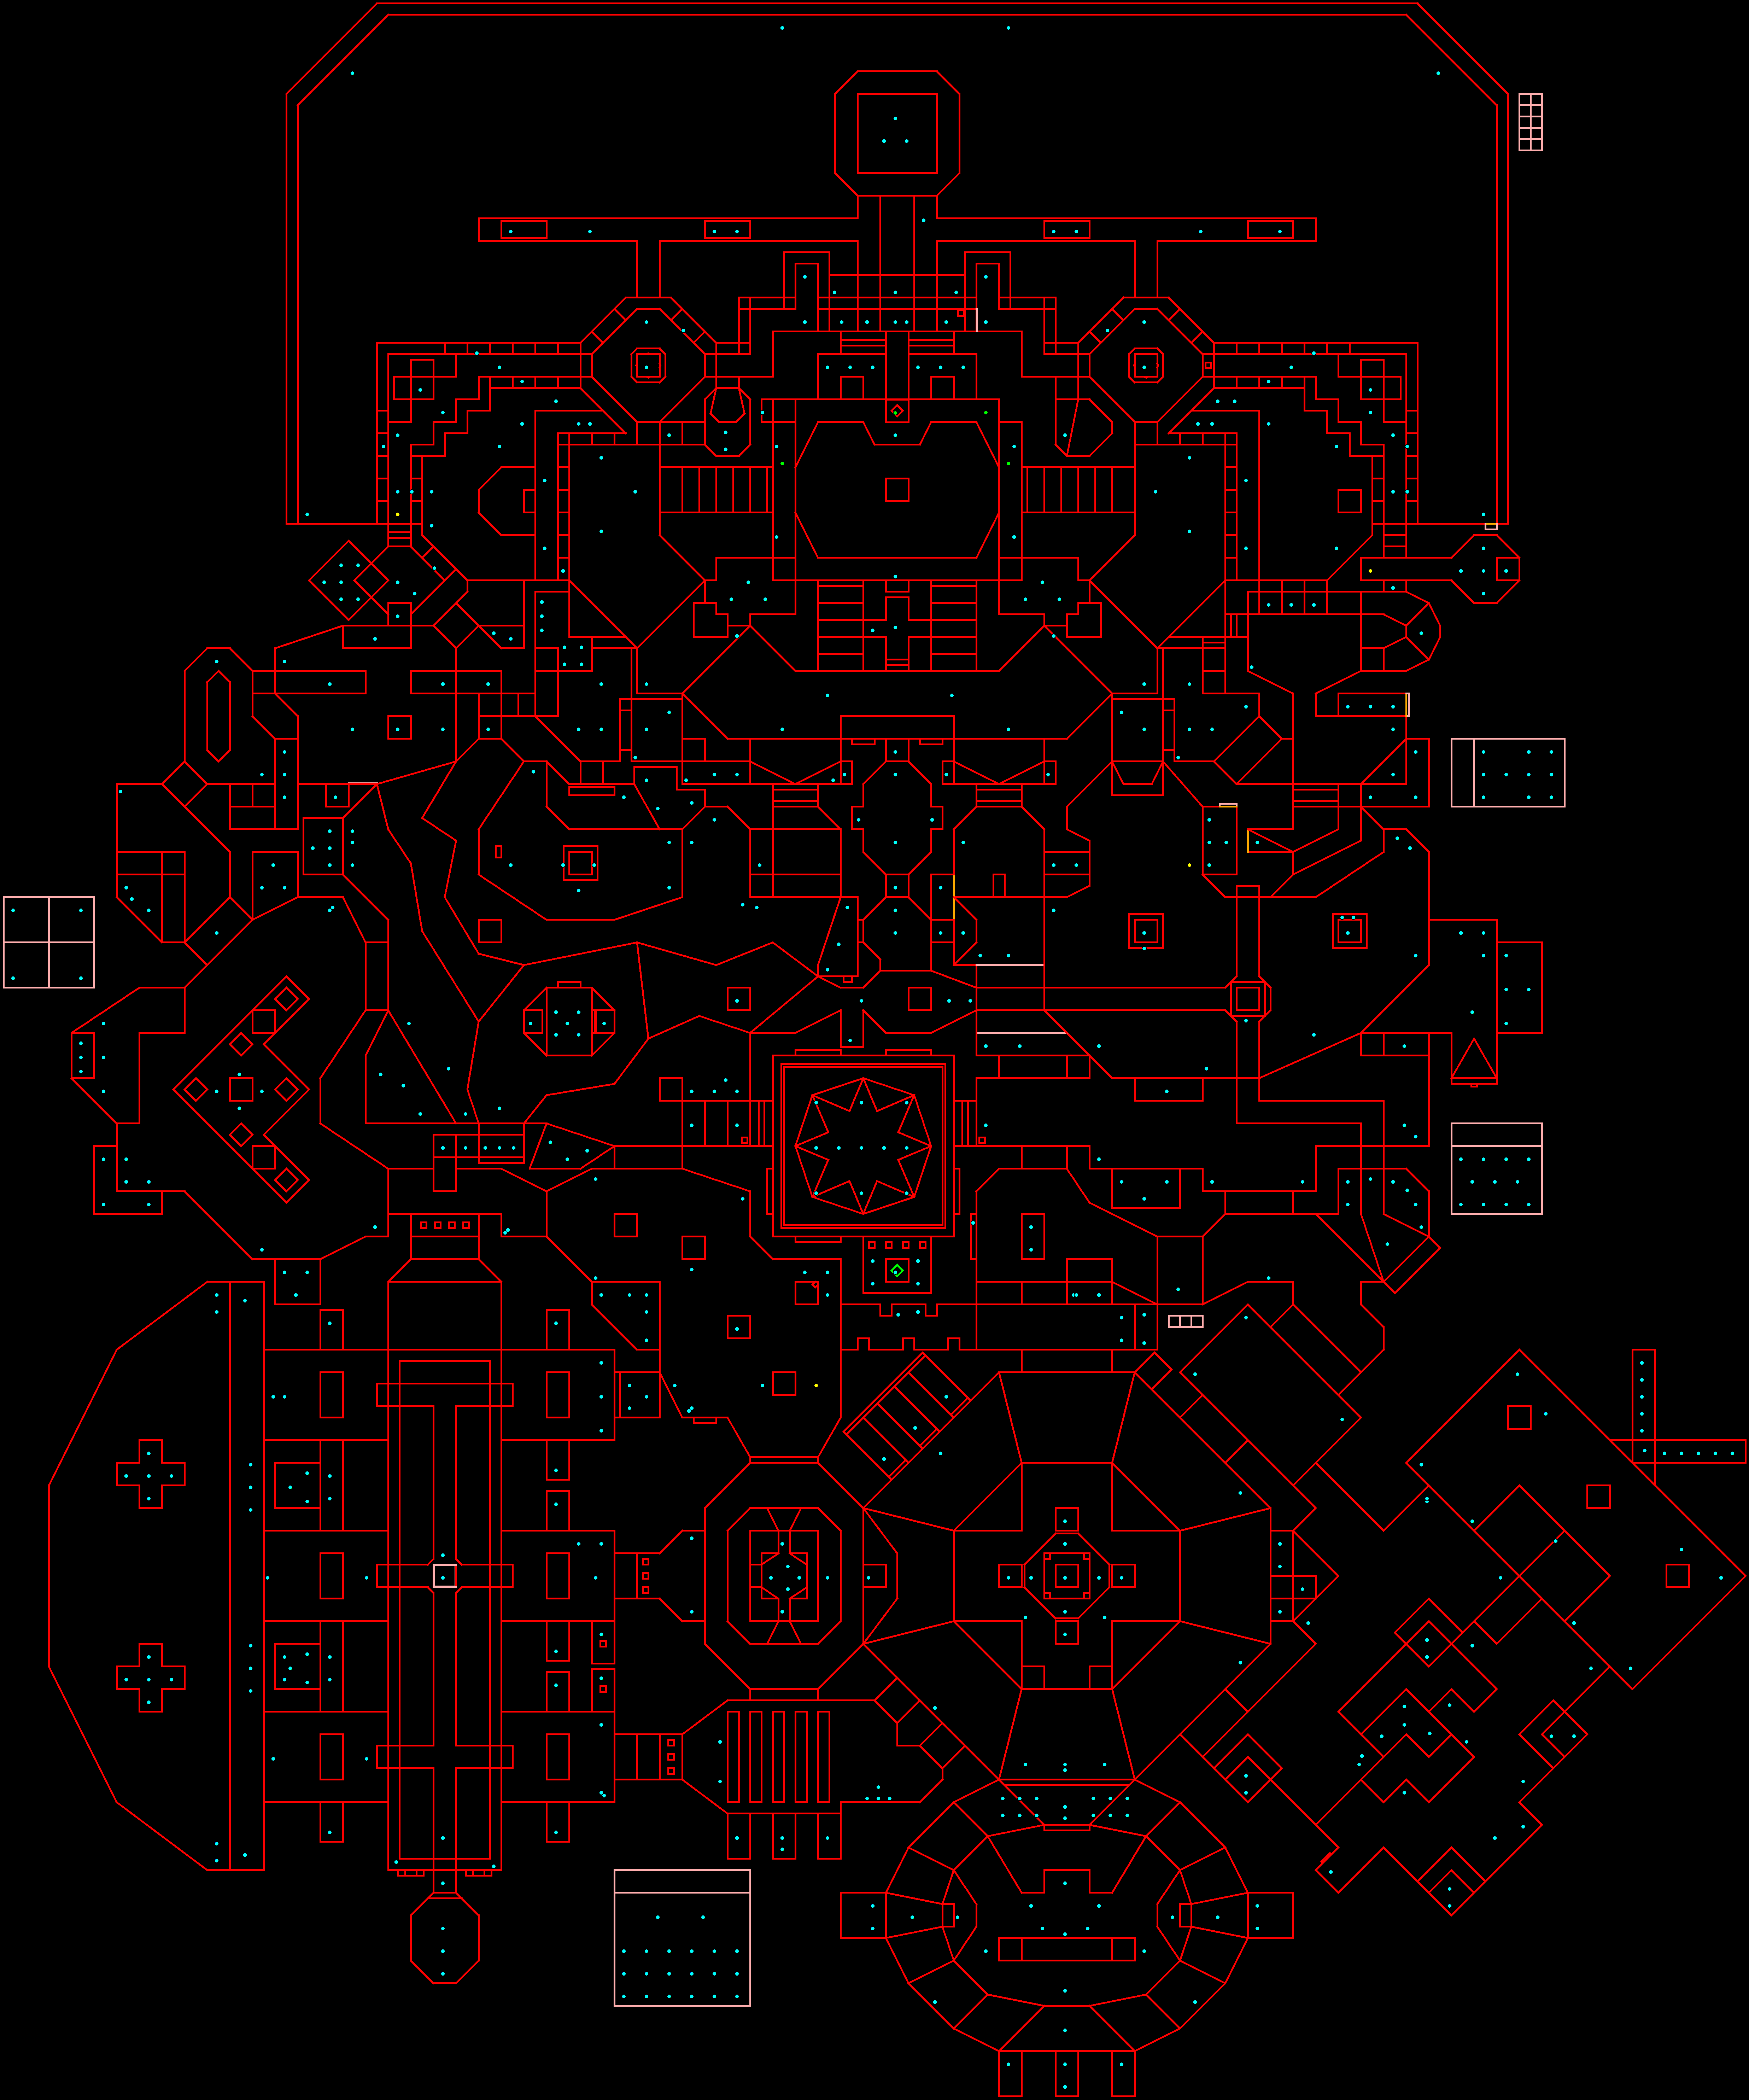 MAP06.PNG